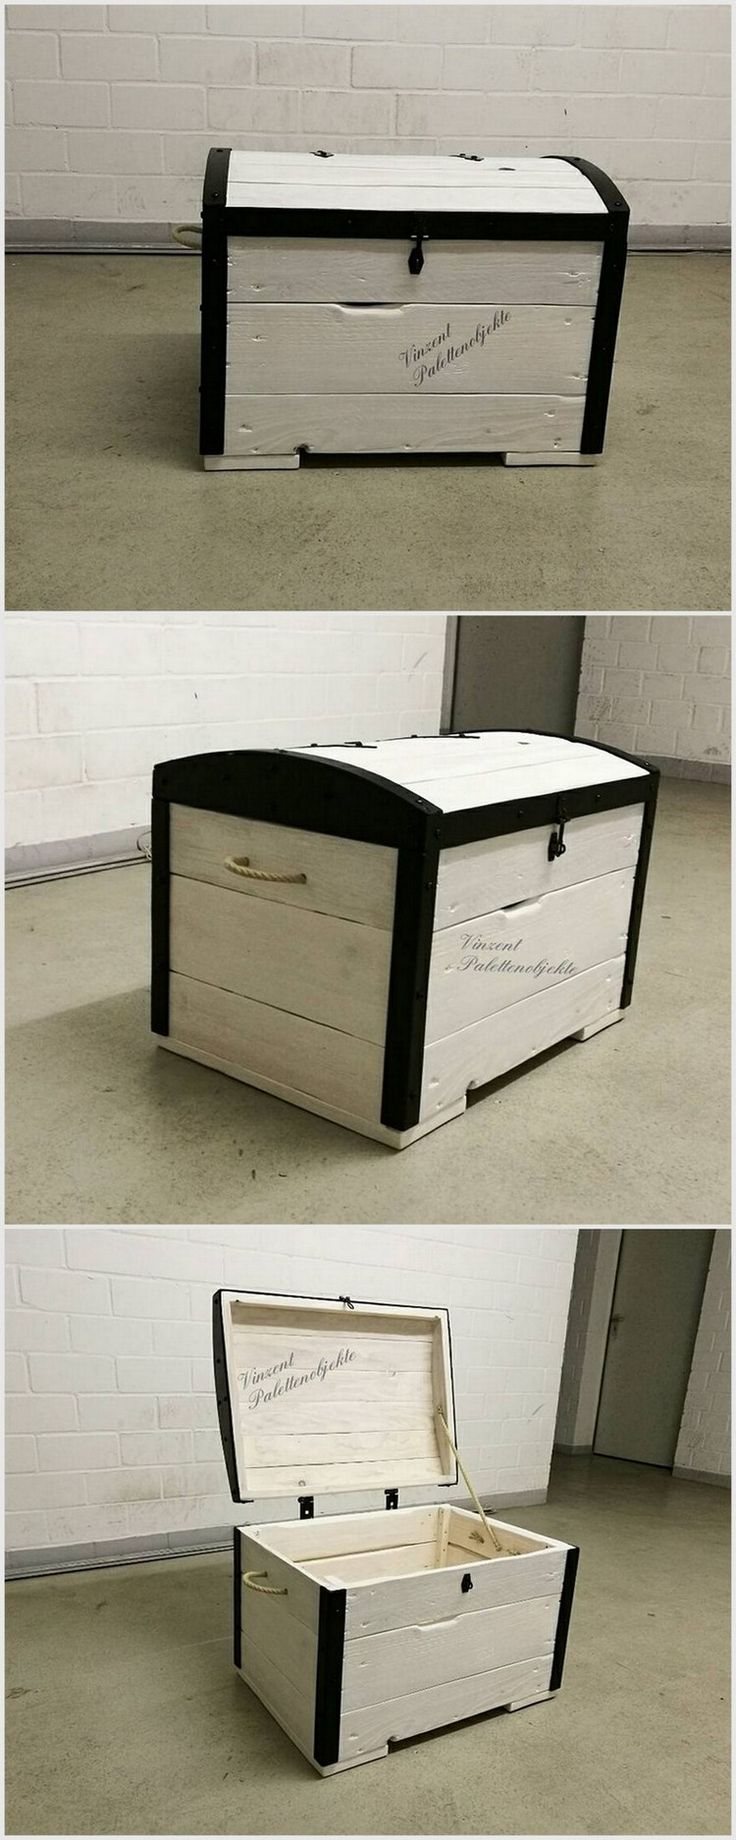 You can make this box which looks more like a treasure box. You can color it in white and put color at the borders of it. It is quite a big wood pallet storage box.